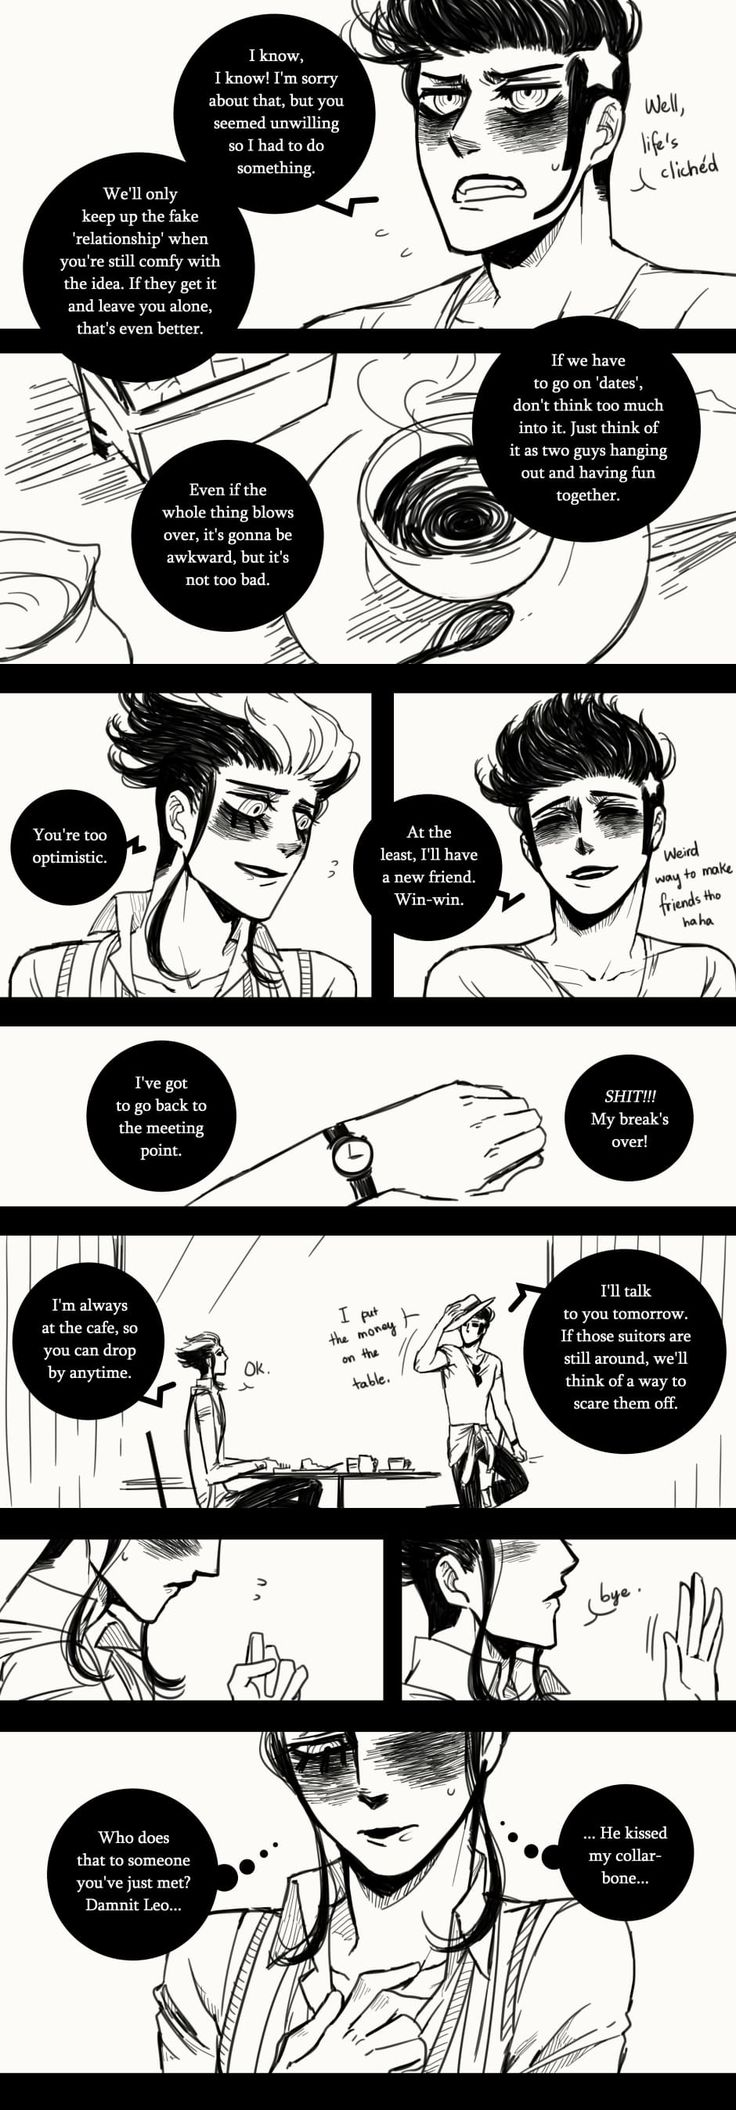 A Matter of Life and Death :: Special Episode: 1 Year Anniversary (Part 2) | Tapastic Comics - image 7